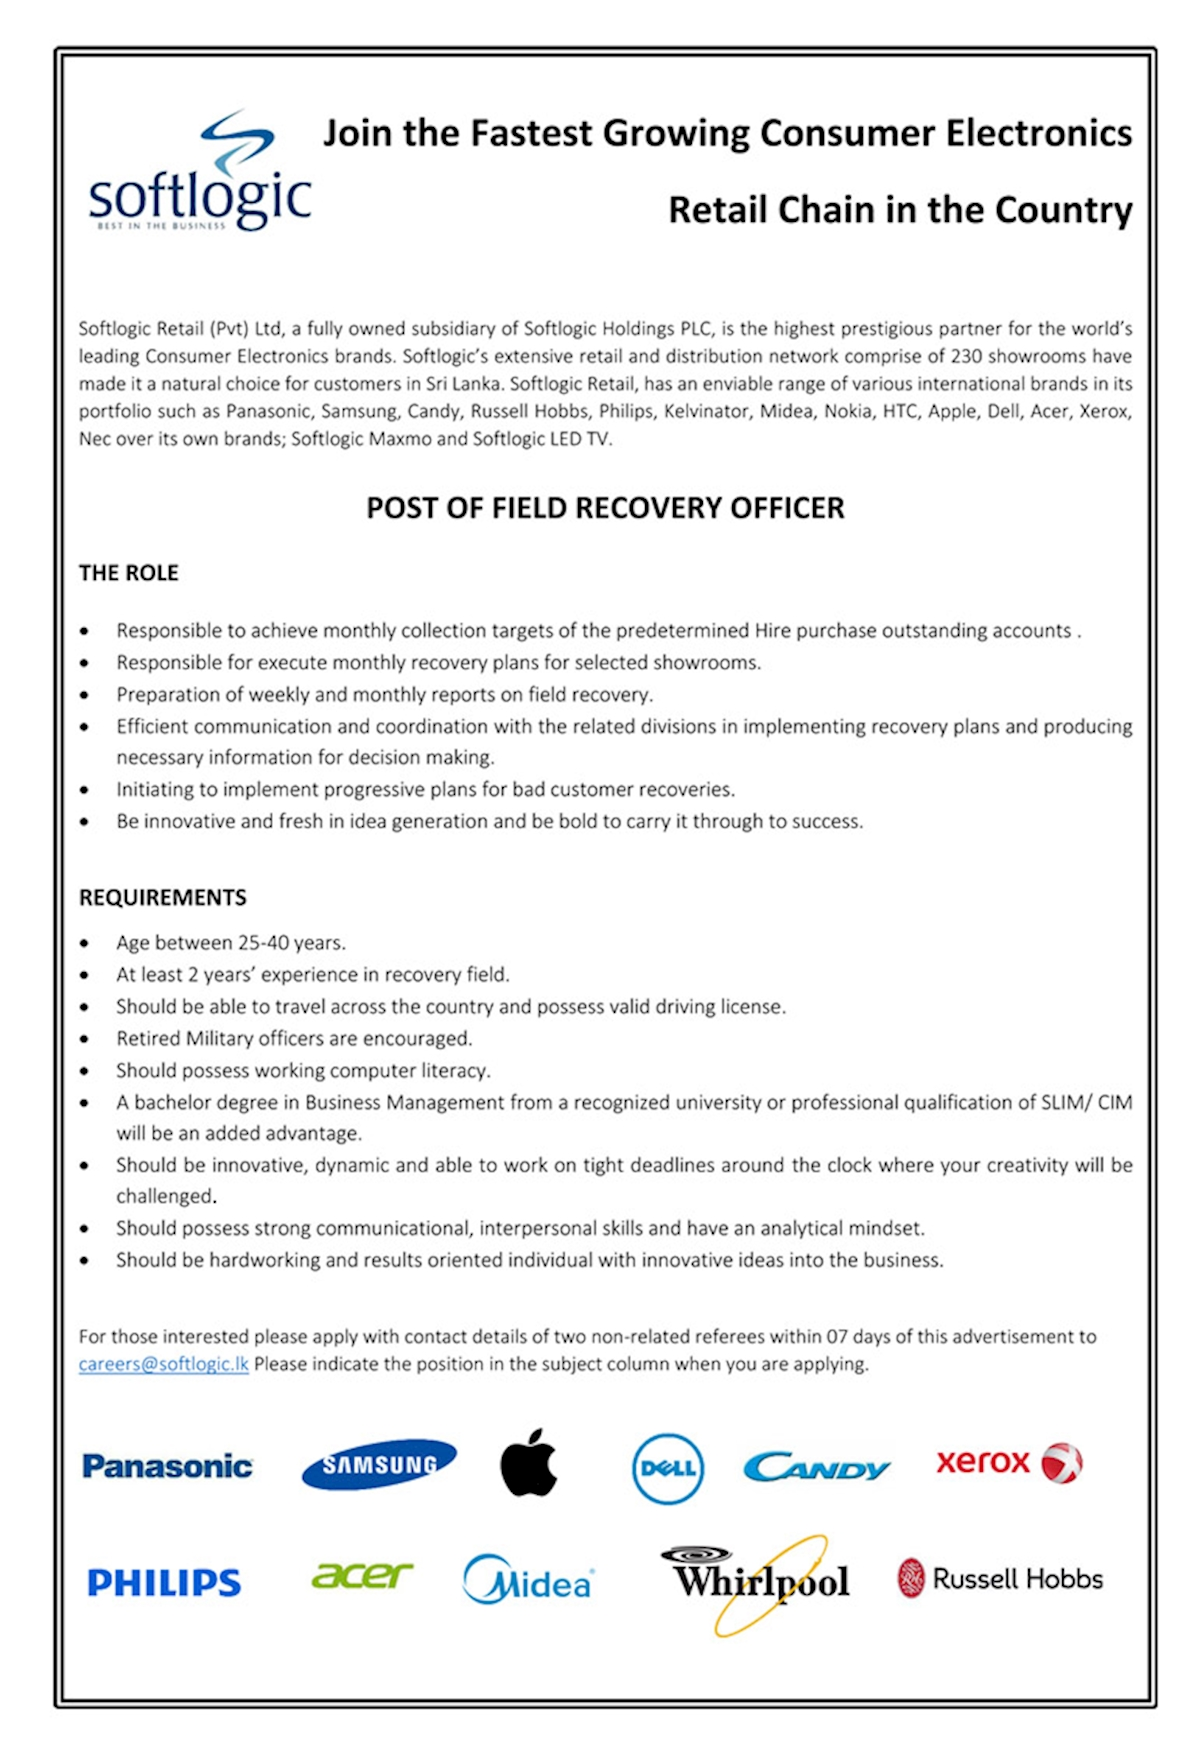 Post of Field Recovery Officer